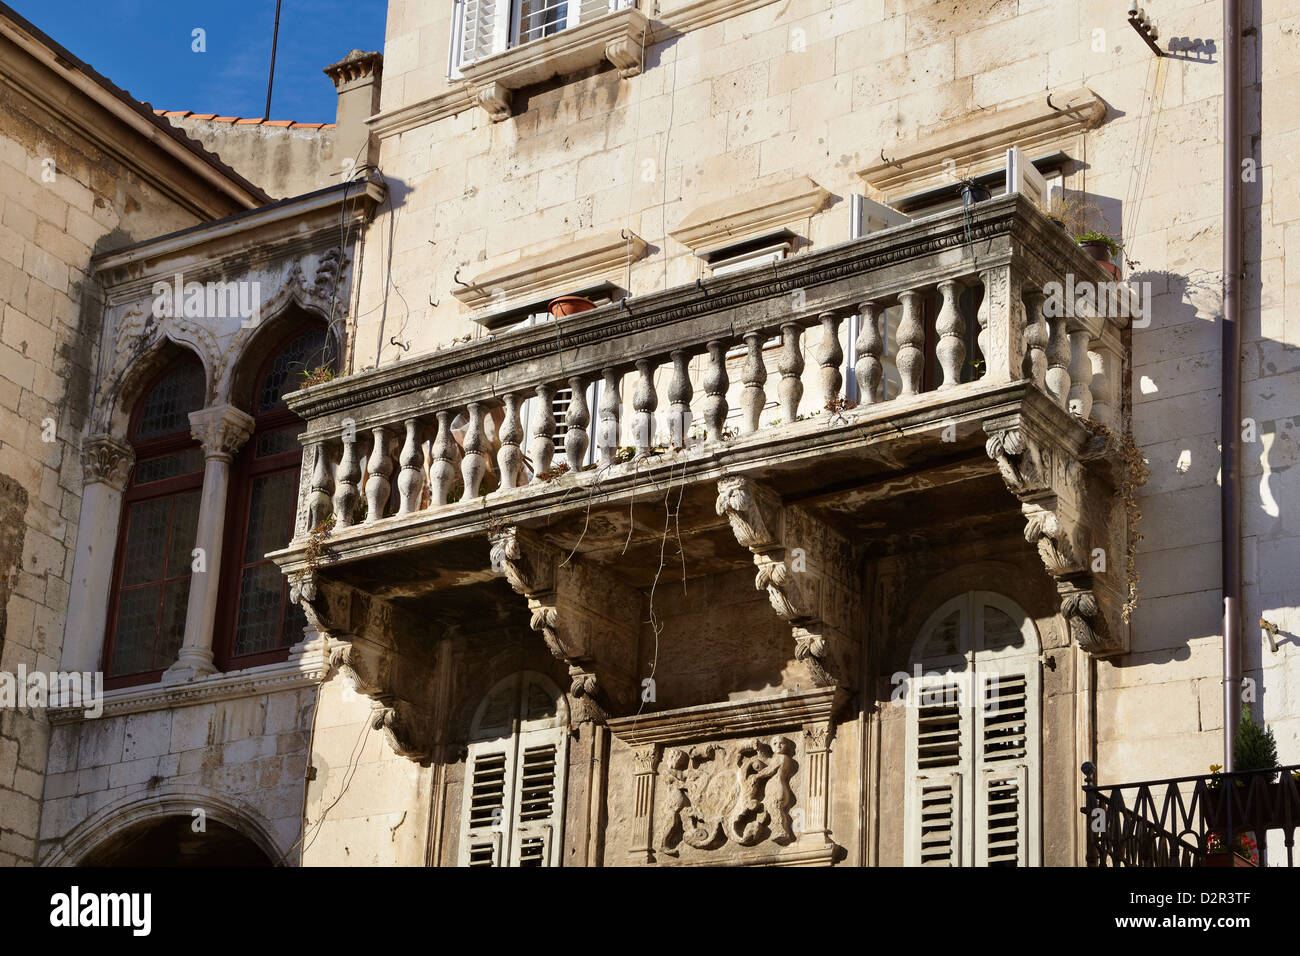 Split, Croatia, detail of architecture in Split Old Town - Stock Image